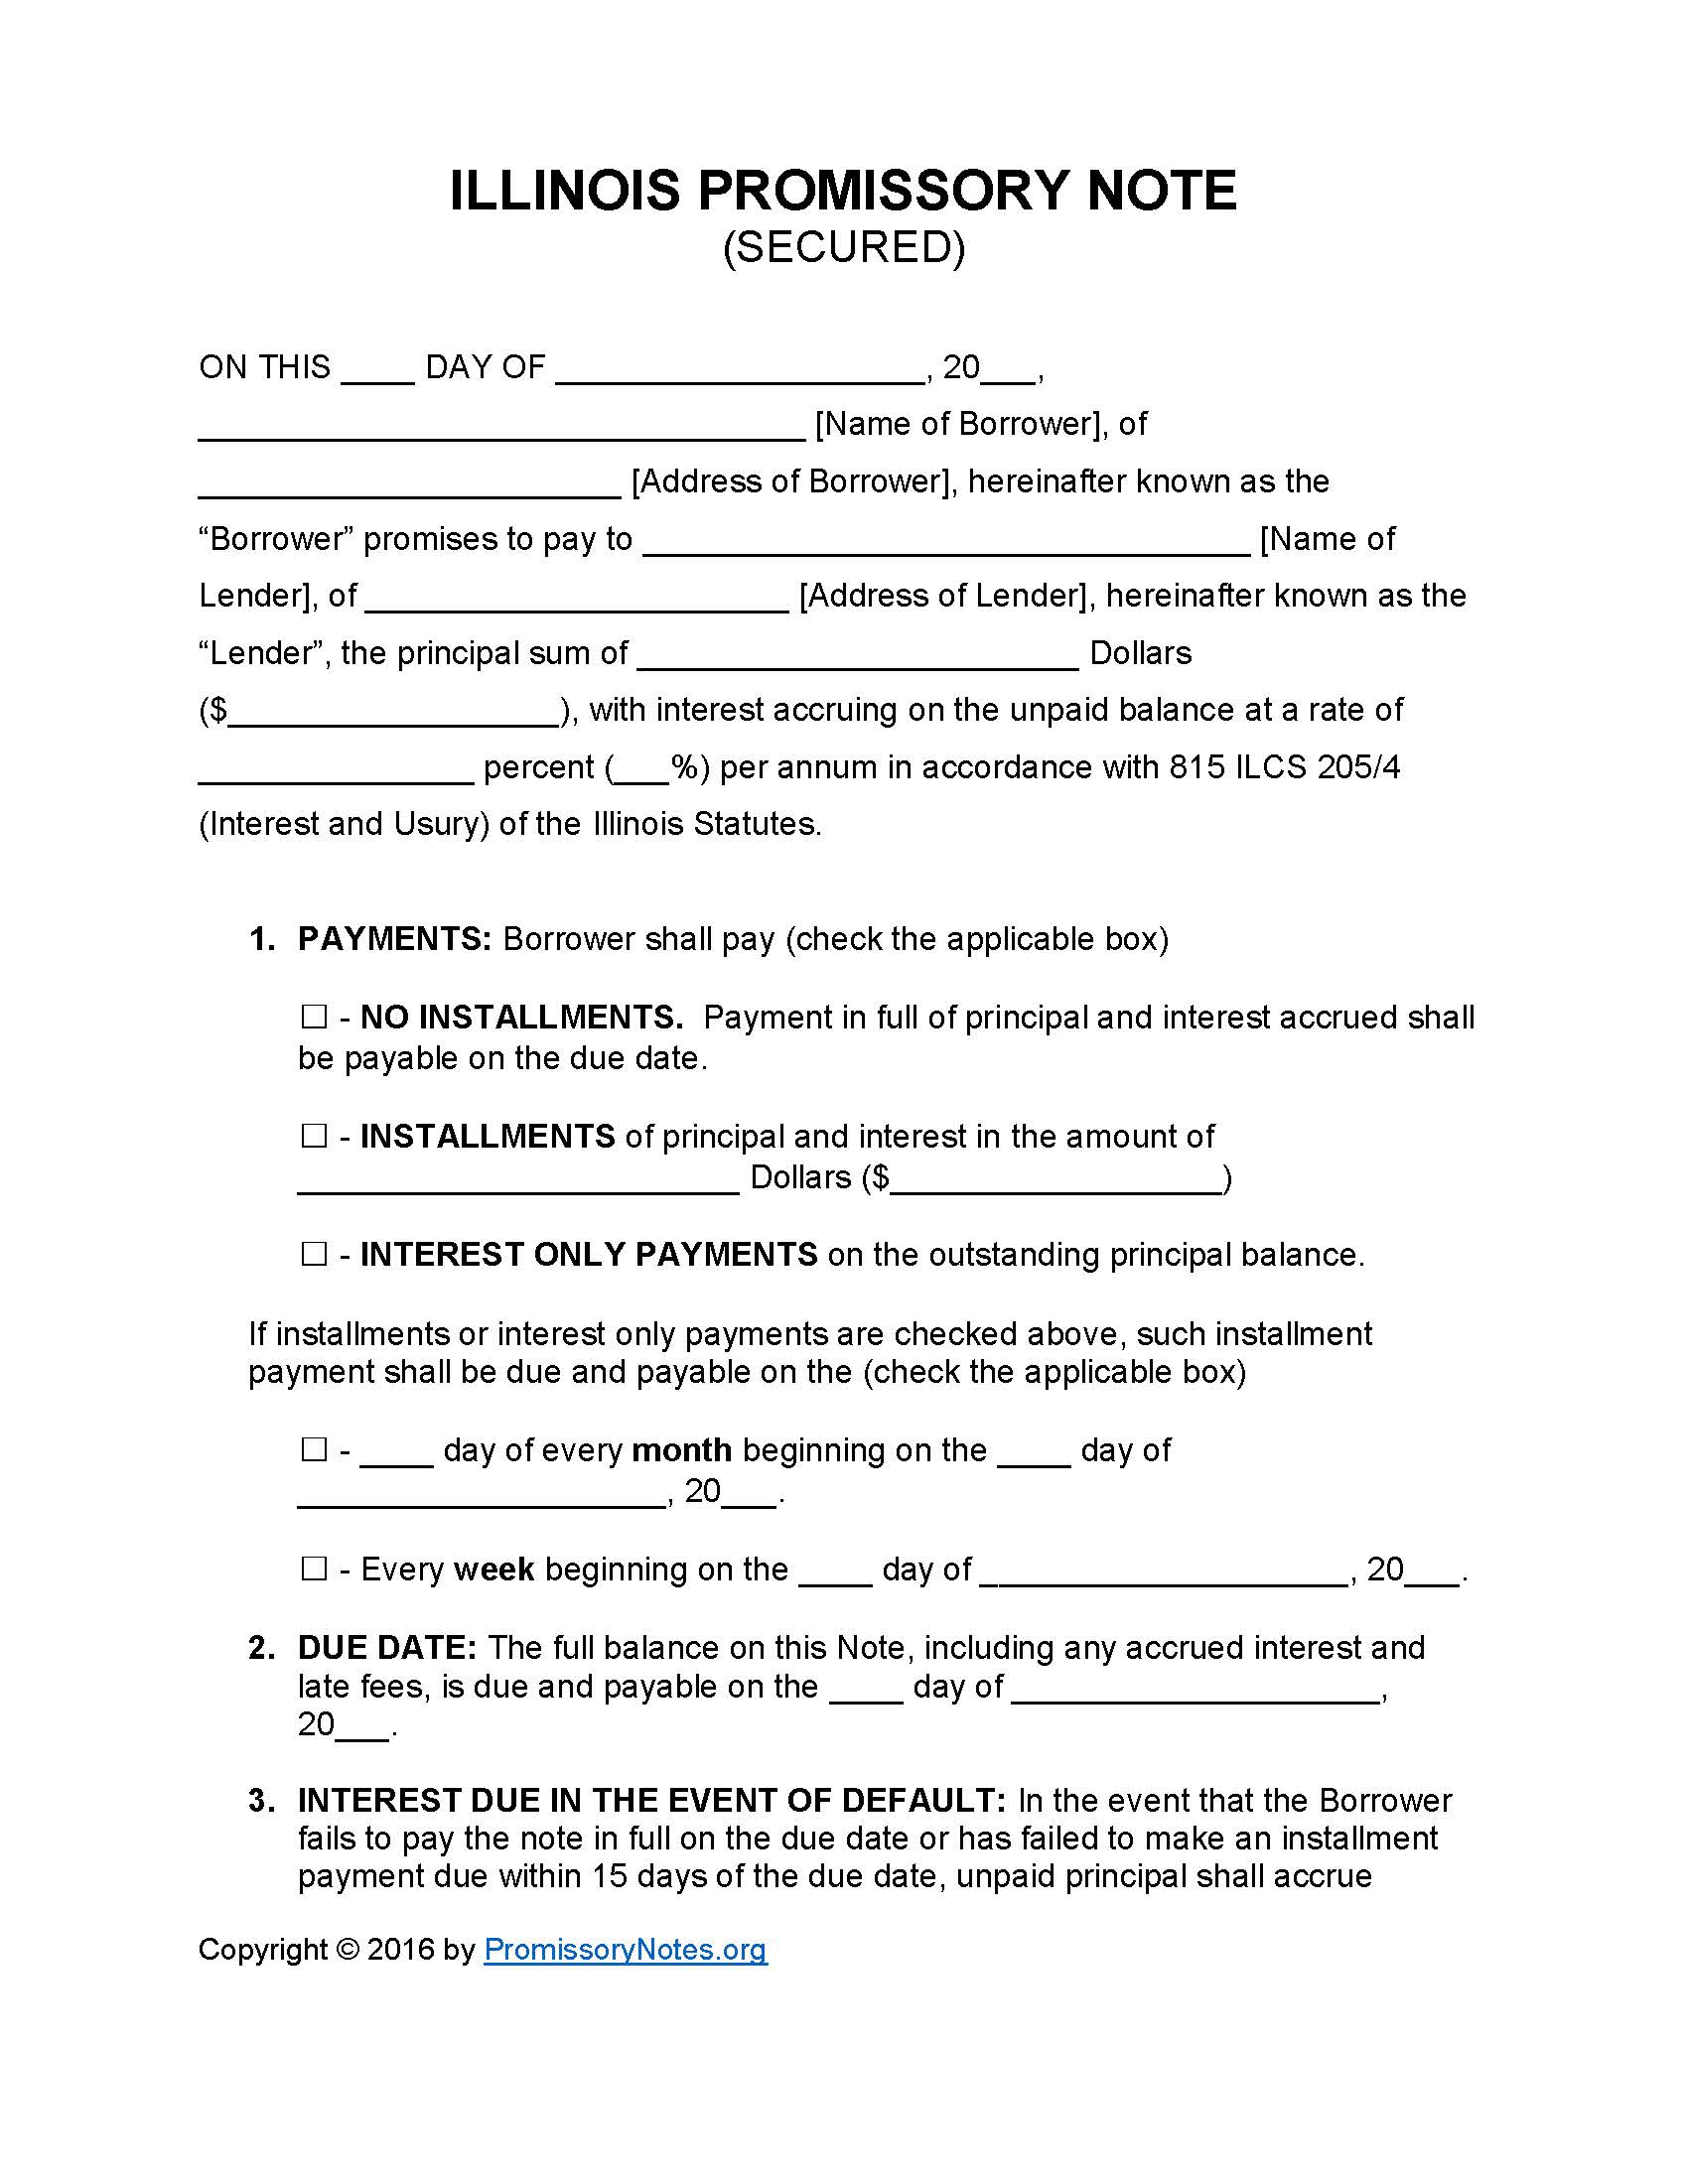 Illinois Secured Promissory Note Template Promissory Notes - Promissory note no interest template